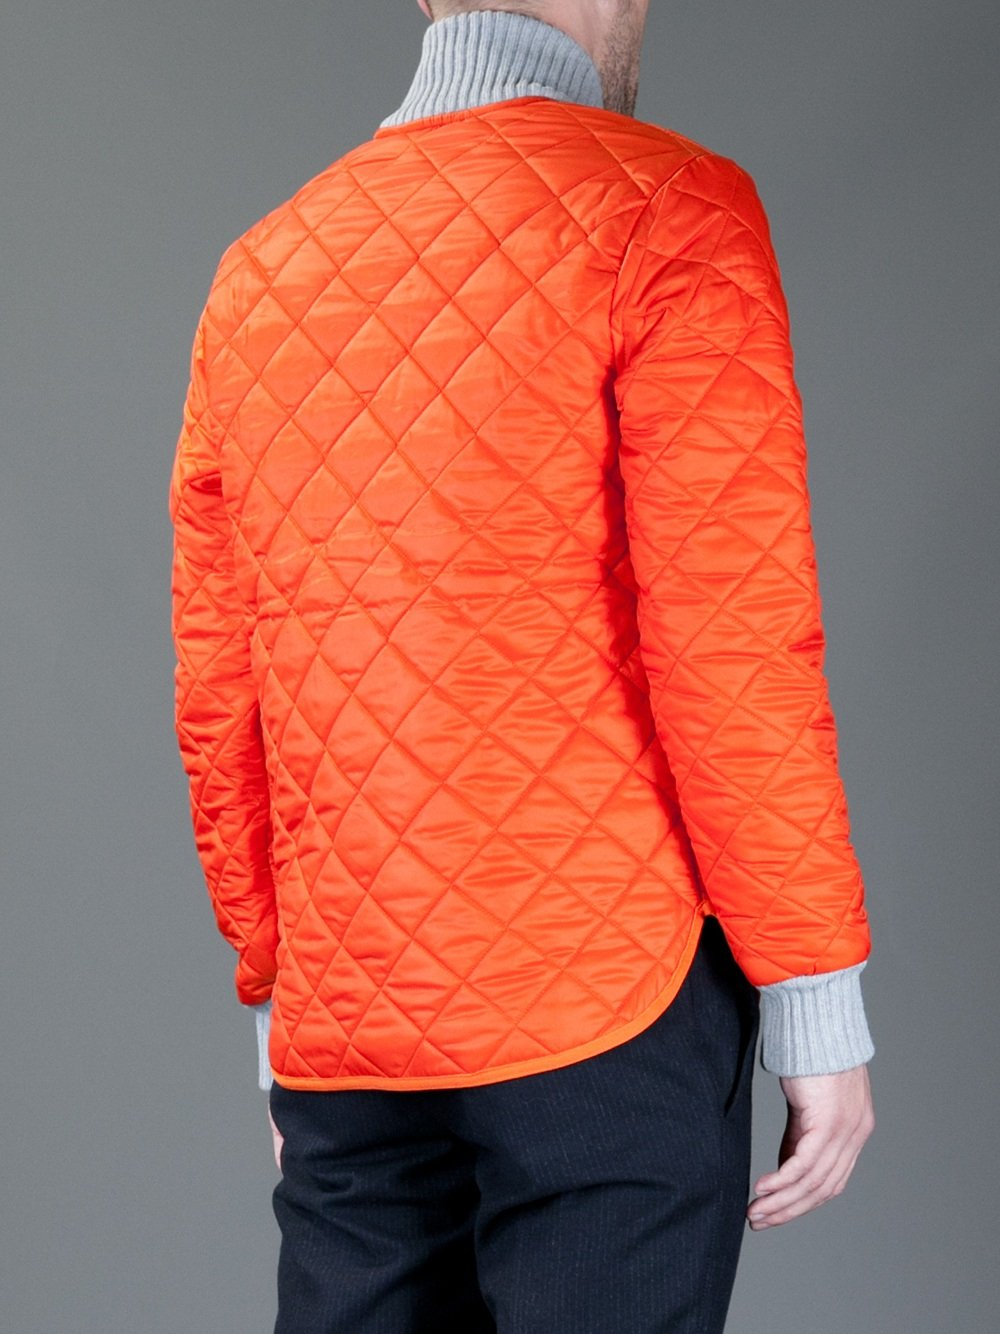 The high visibility orange safety jackets have ANSI class ratings and silver reflective stripes. They come in styles like bomber, hooded, parkas, black bottom, waterproof and weatherproof. Orange hi-viz safety jackets are designed with optional pockets, removable liners, and range in sizes from small to 6X.